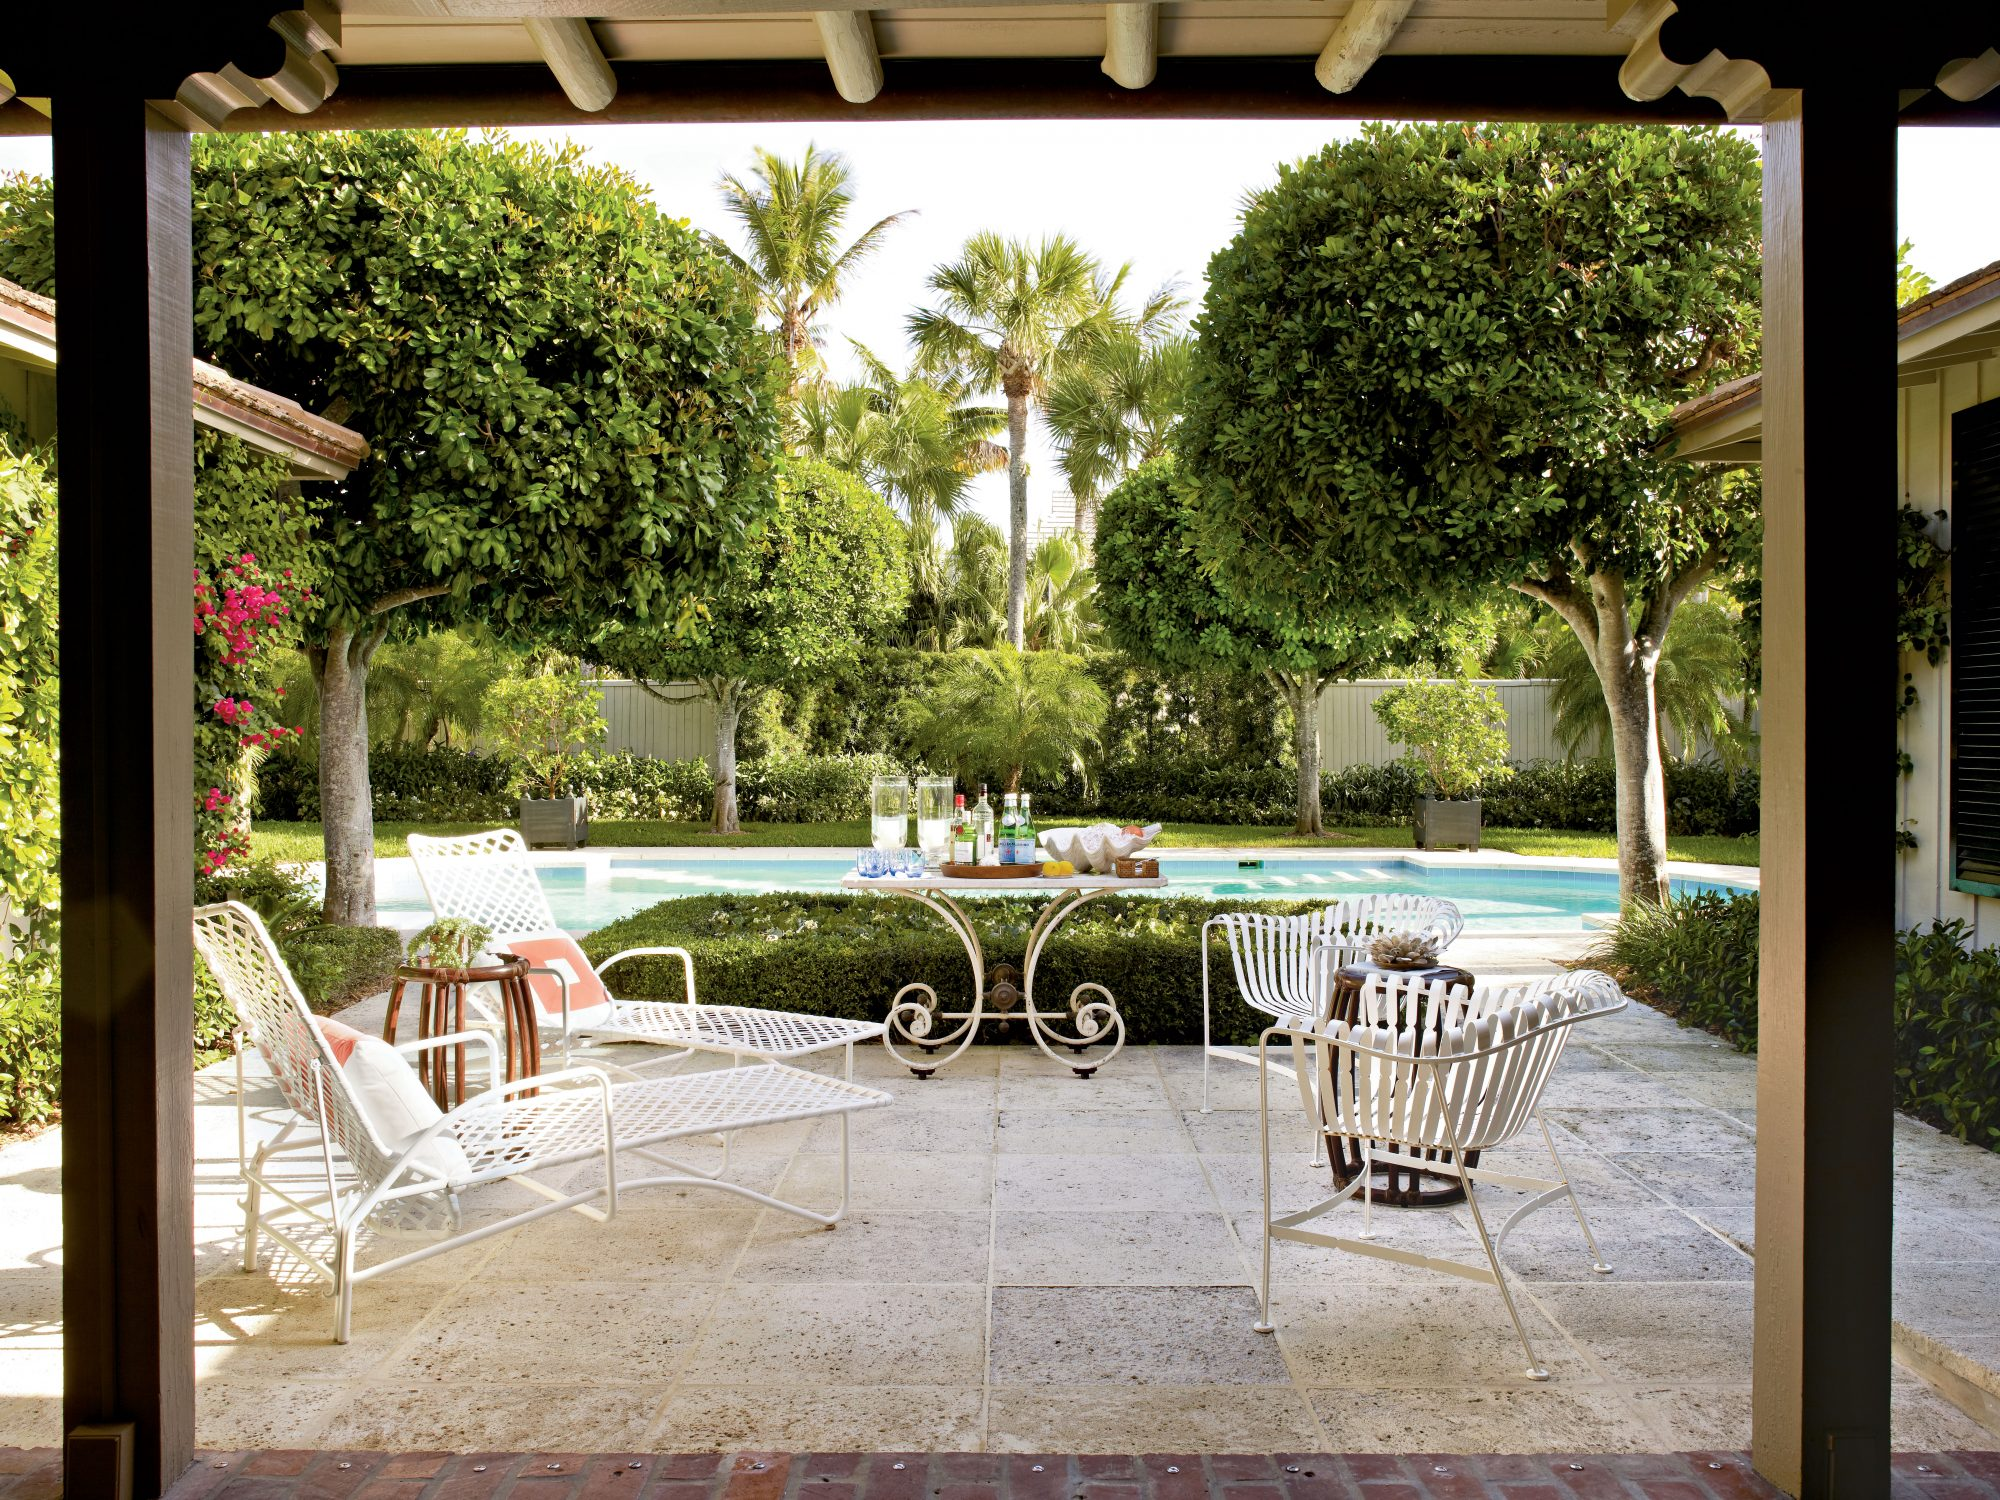 A shady loggia connects to the main house for easy entertaining. Vintage white furniture beckons swimmers to lounge in the sun for a while.